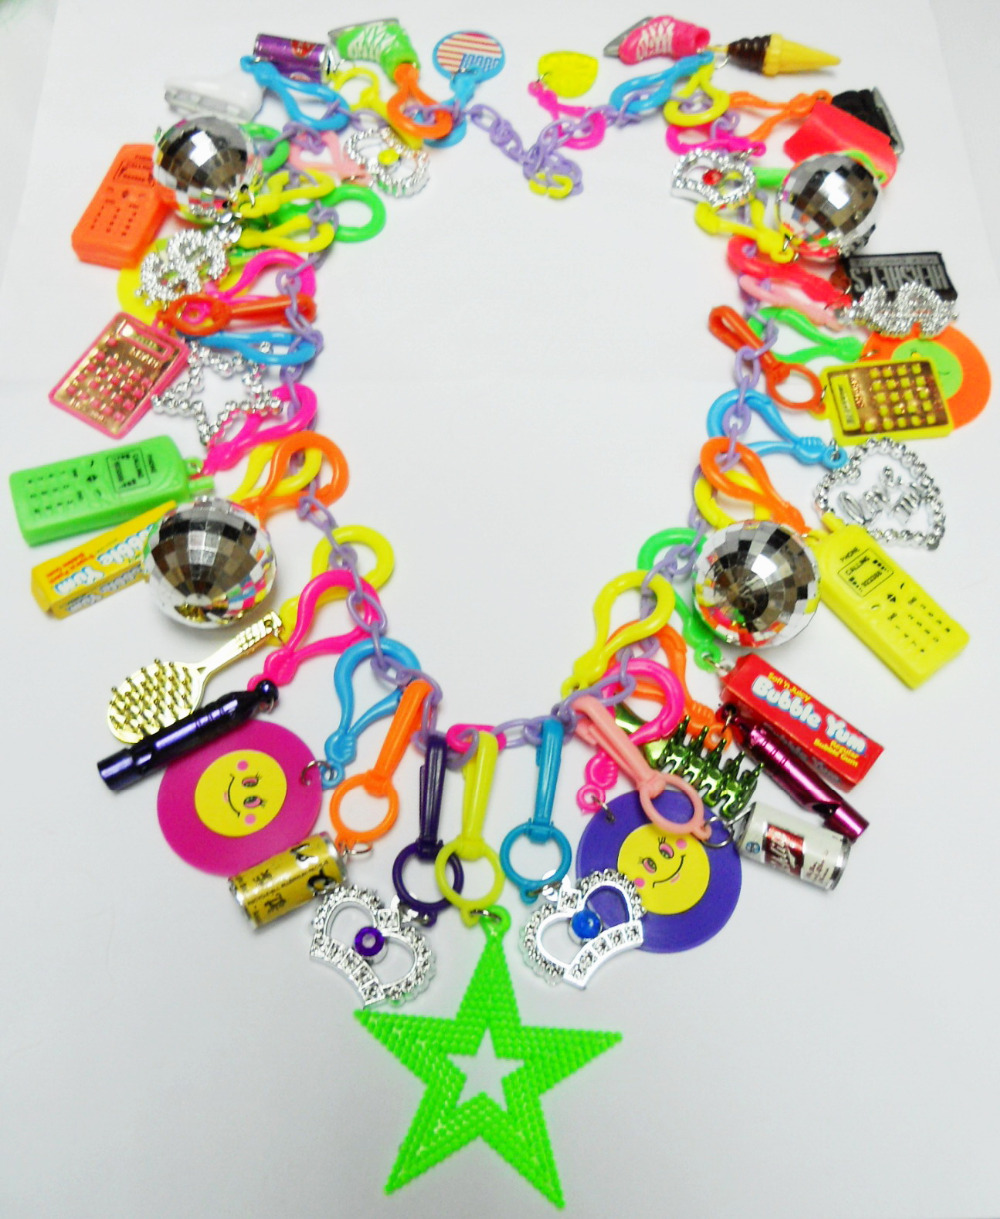 Party Pinata Us 26 99 Vintage Plastic Charms 80cm Necklace 41 Charm Party Pinata Chips Retro Fashion Jewellery Birthday Party Favor Gift Novelty In Party Favors